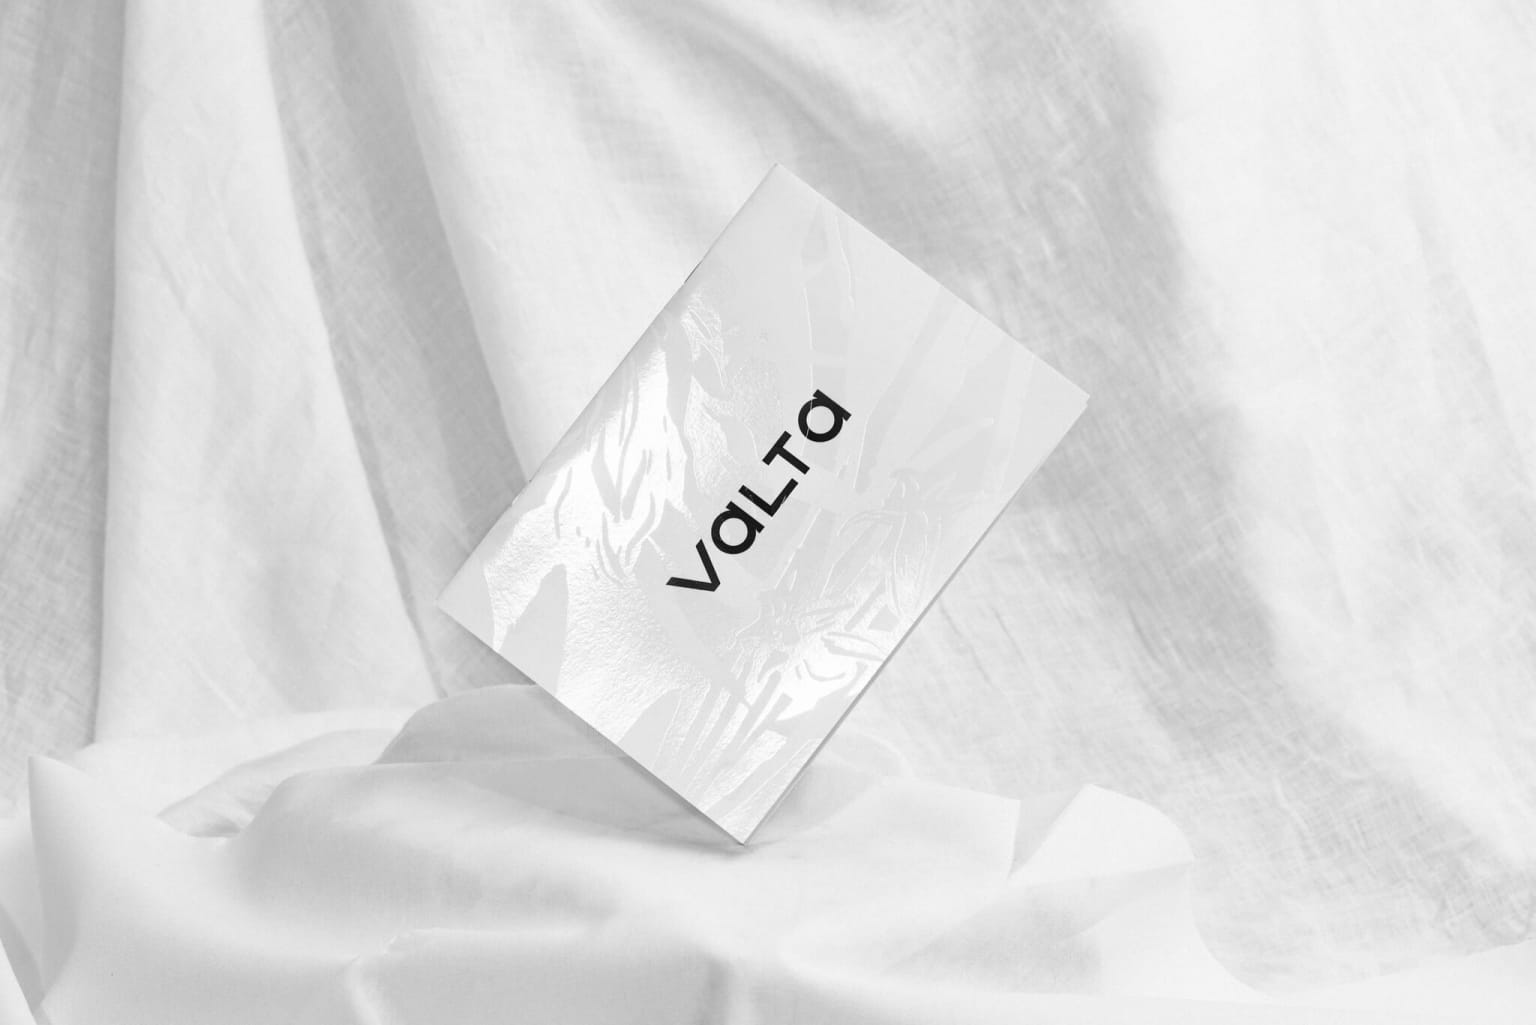 Valta - Identity and art direction